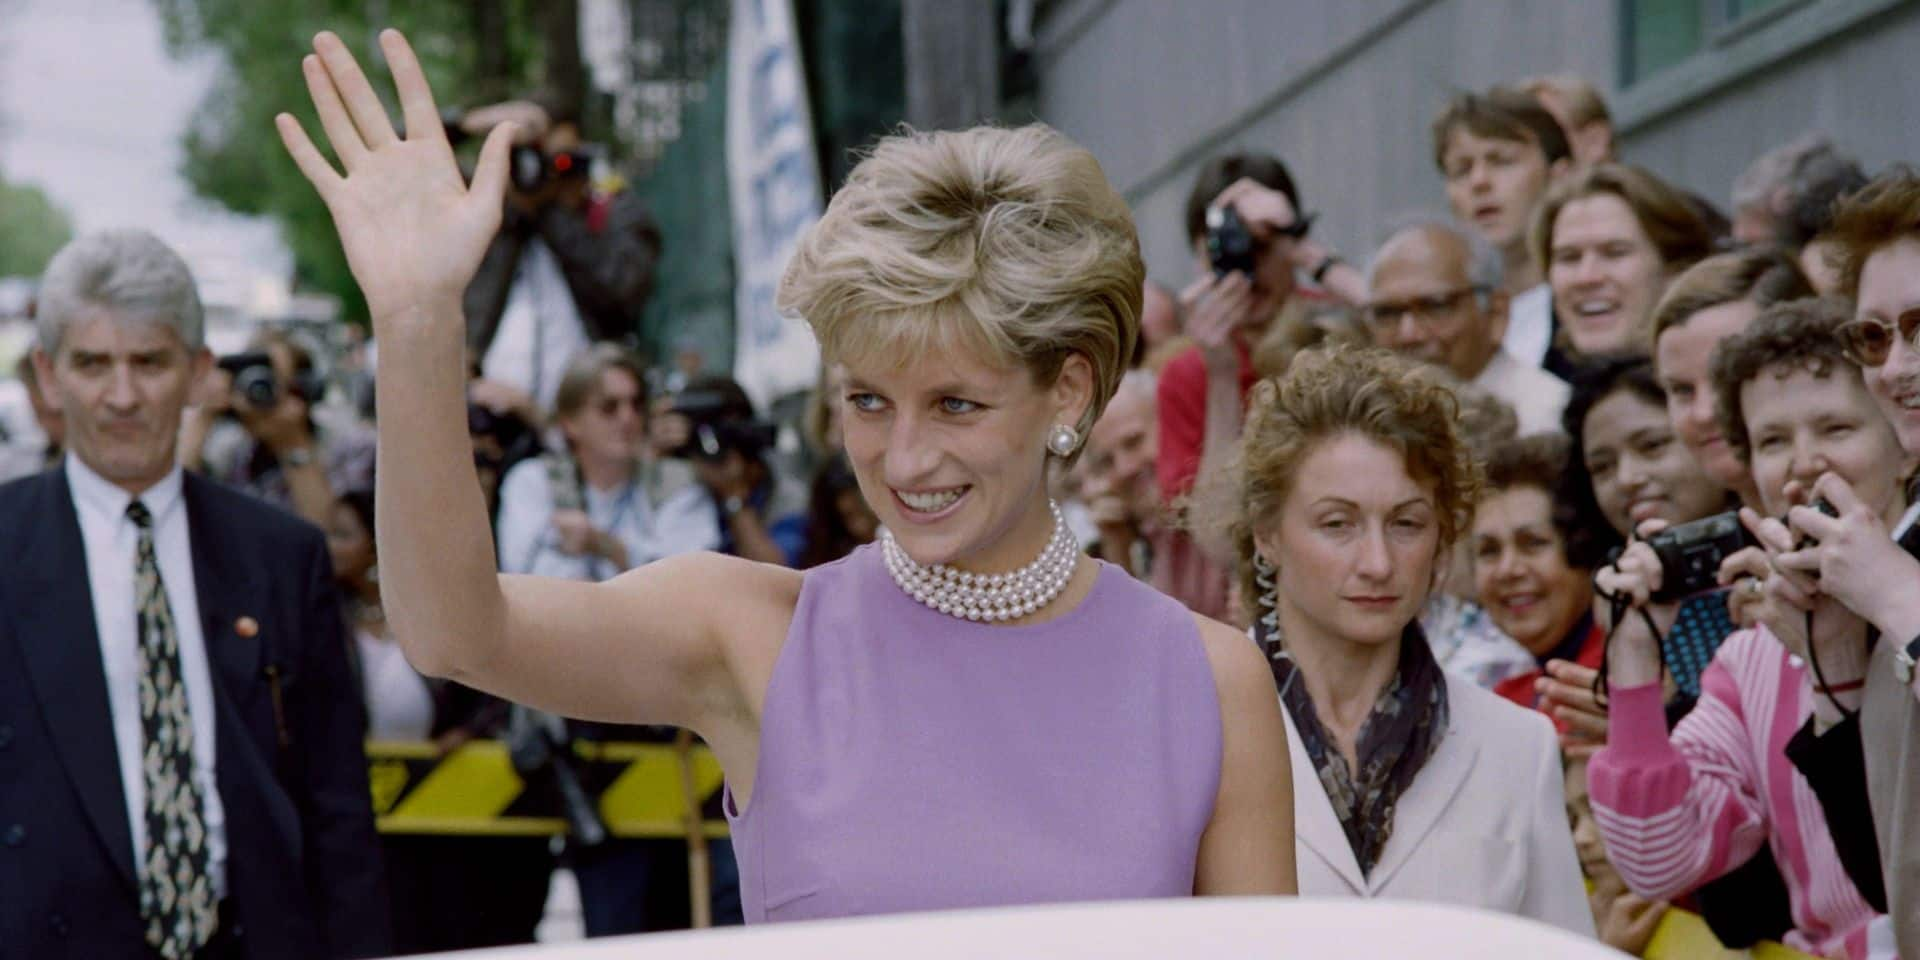 Deux photos inédites de Lady Diana refont surface